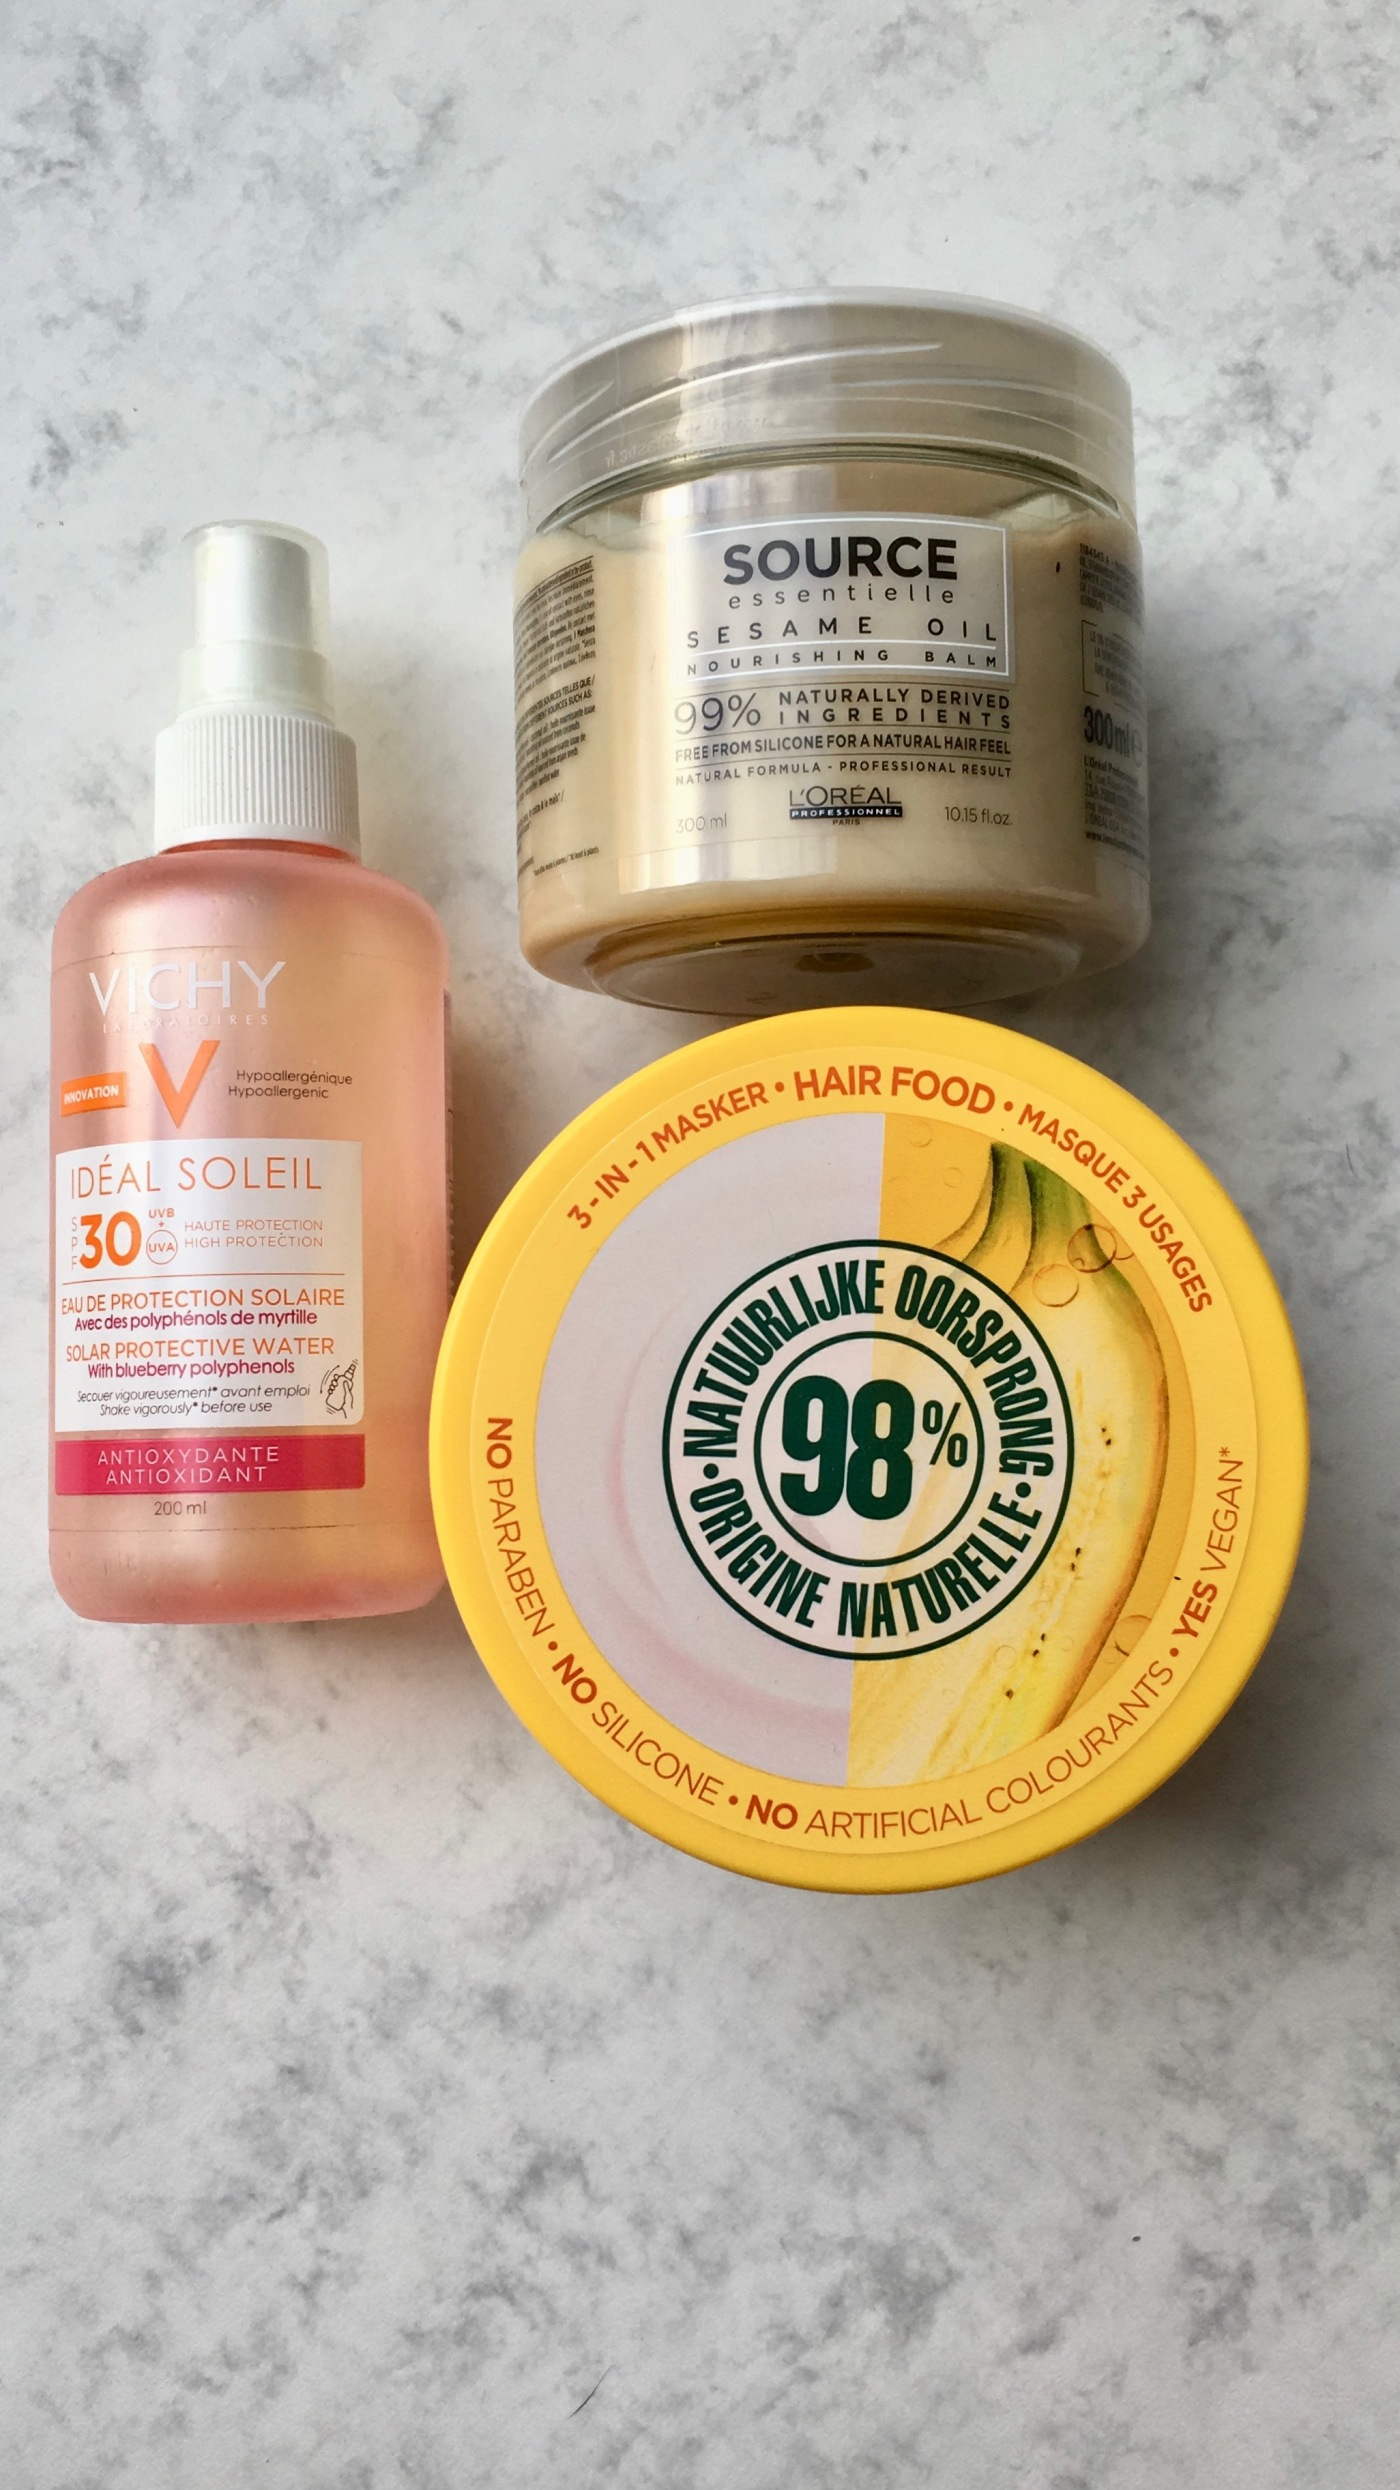 garnier hair food source essentielle L'Oréal professionnel Idéal Soleil Vichy beauty favorites 2018